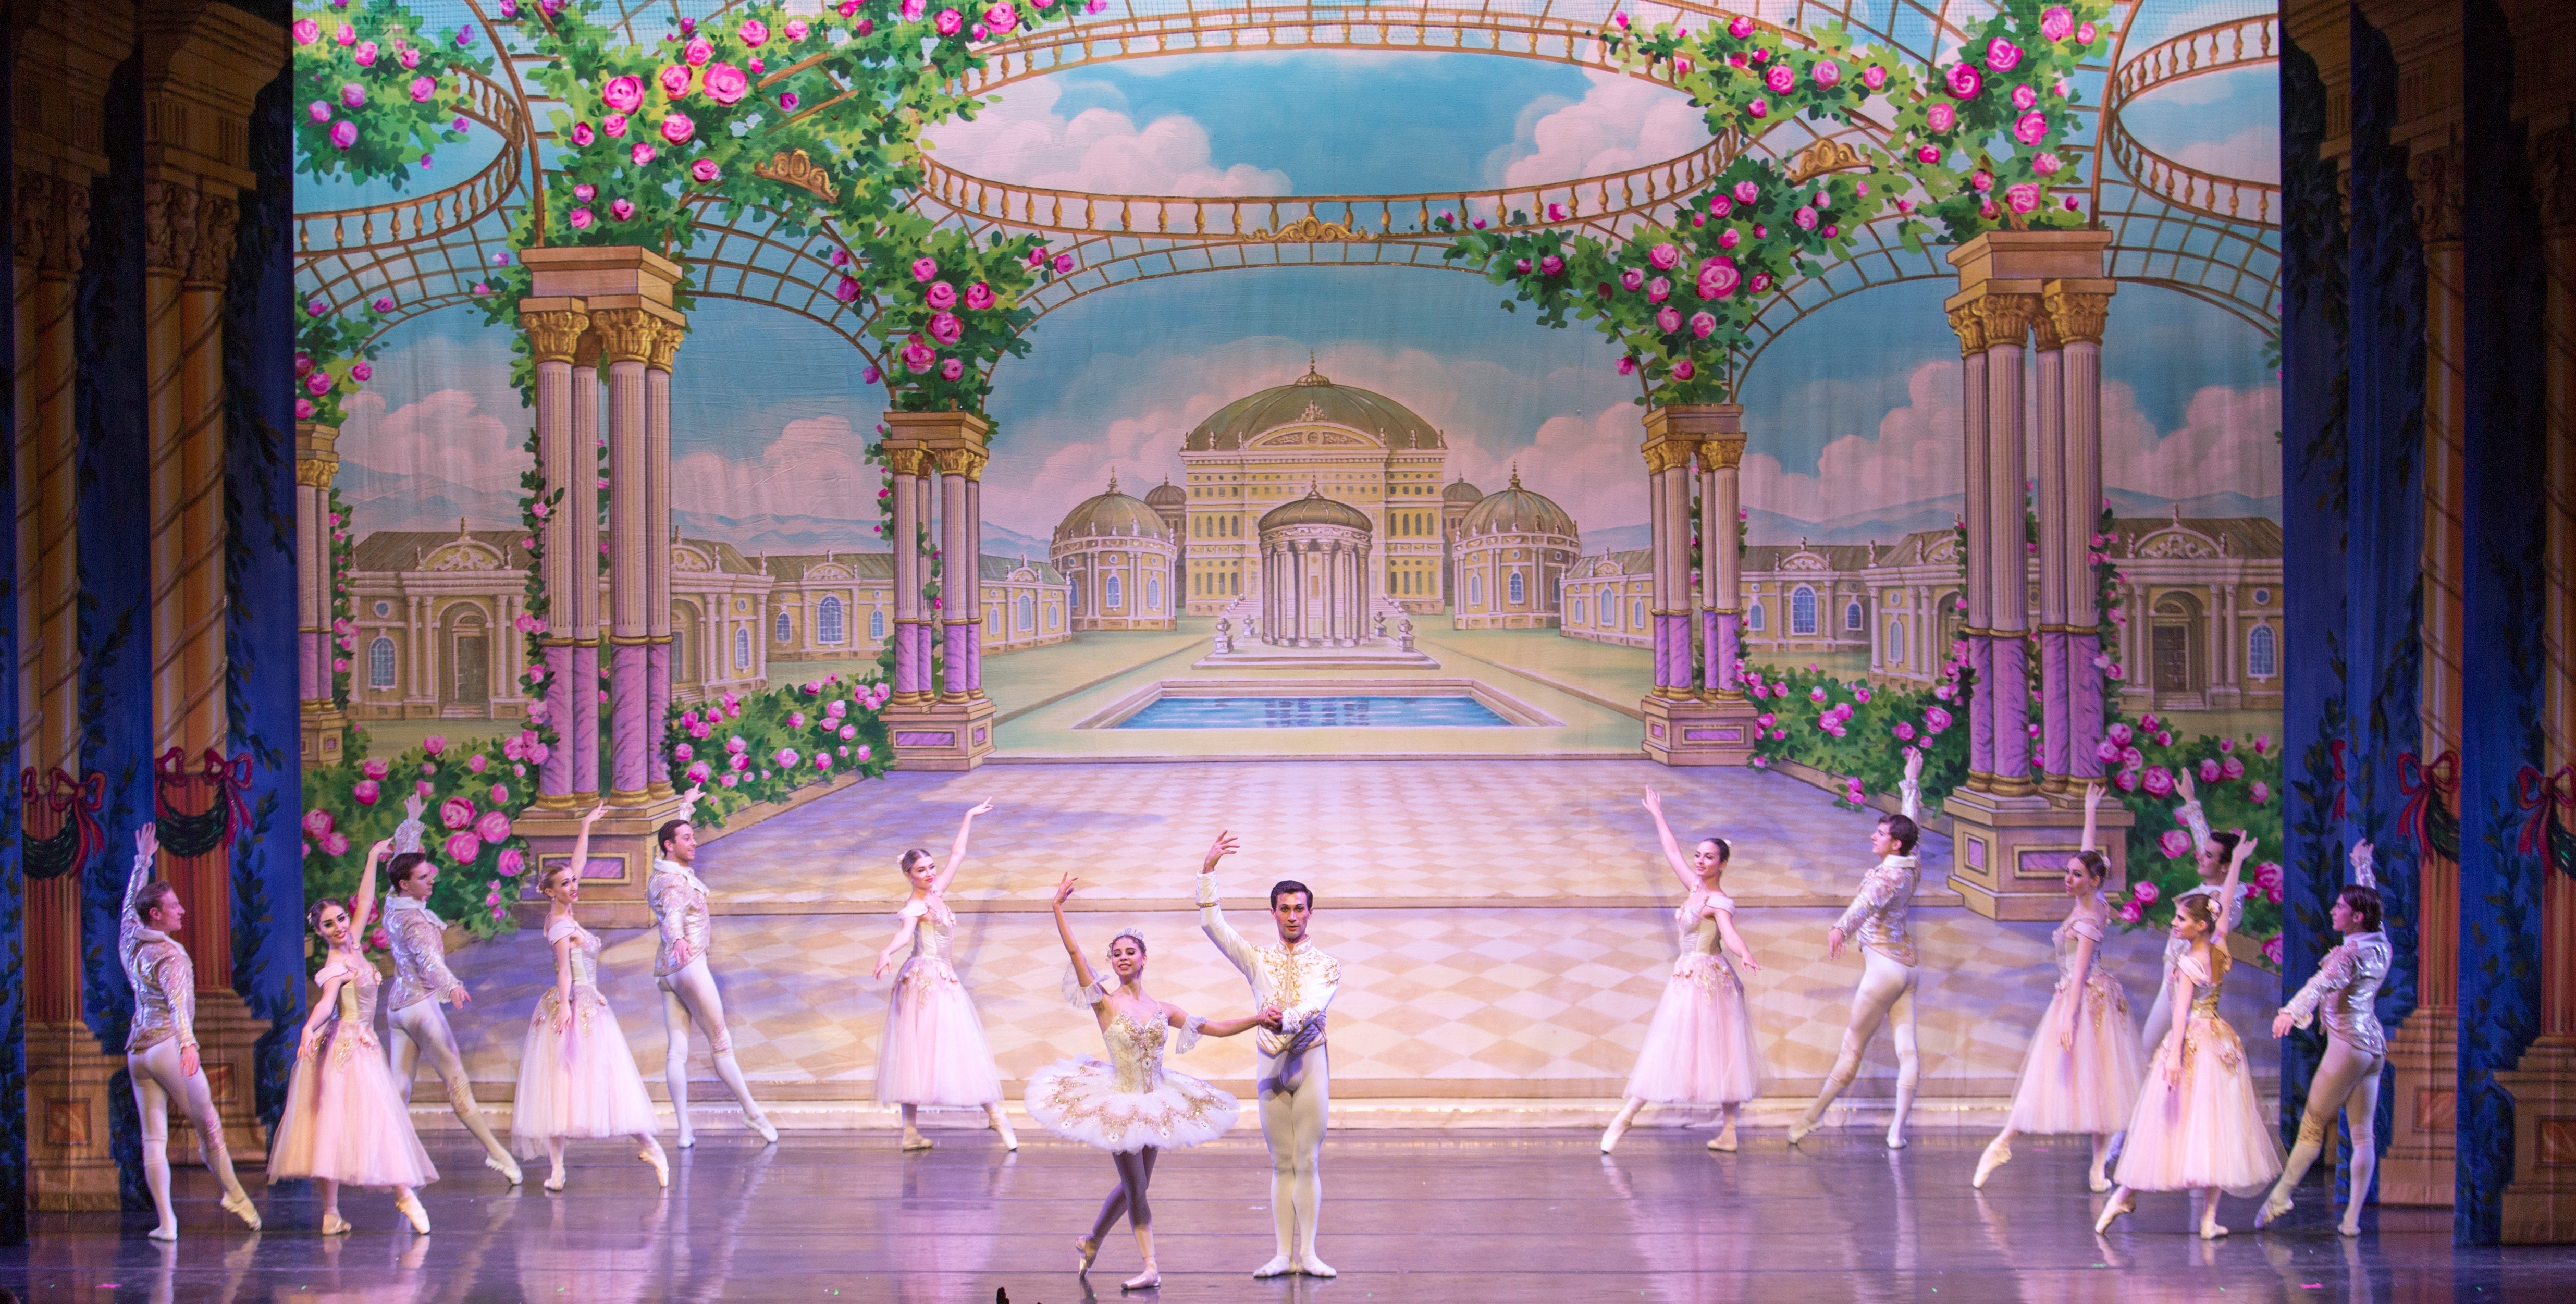 19. Moscow Ballet's Waltz of the Flowers, costumes by A Oliver